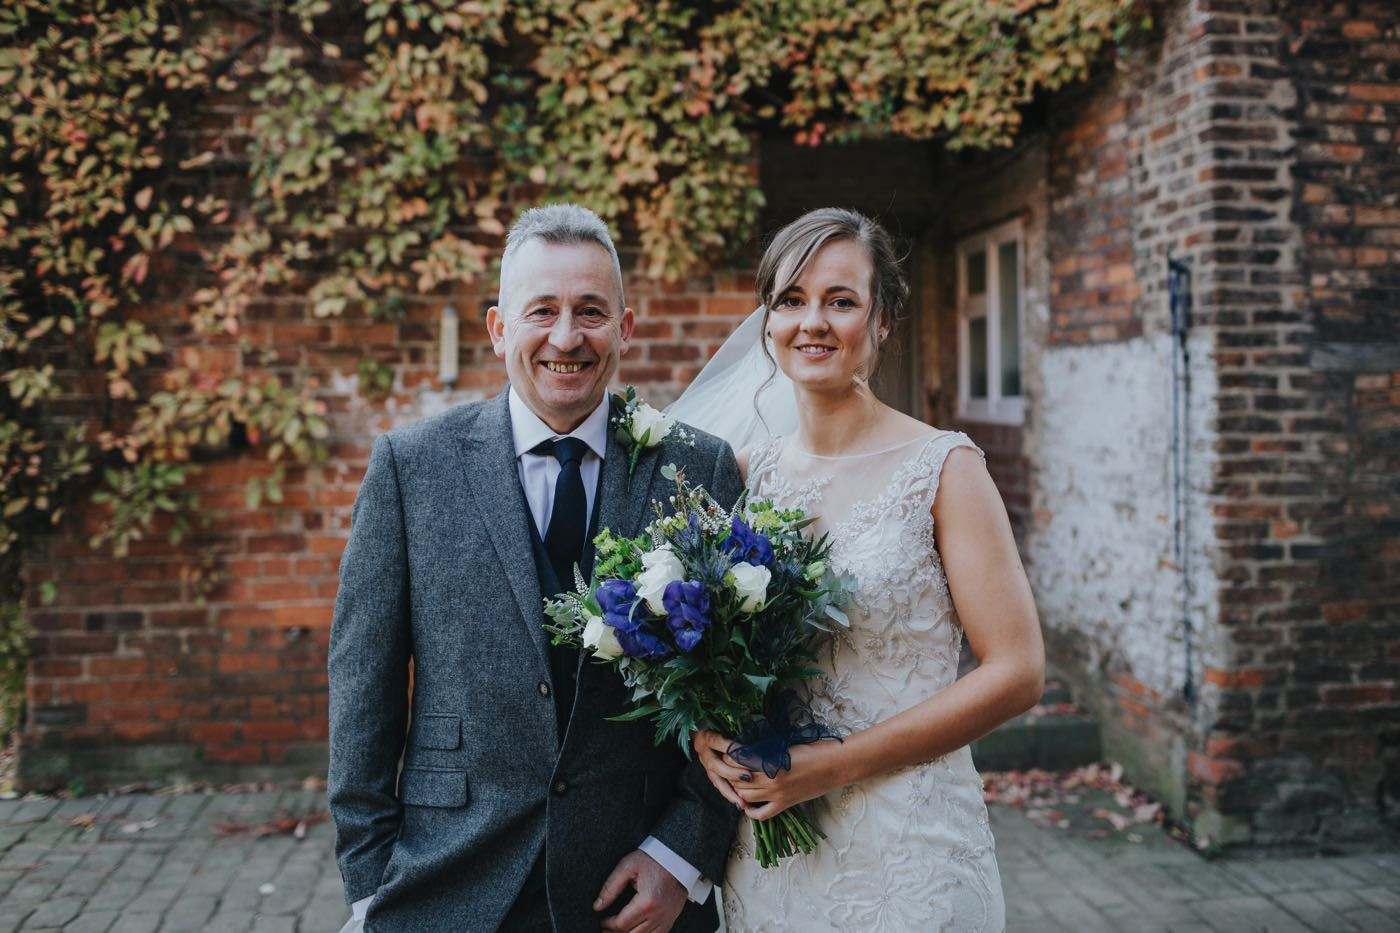 Emma & David | The Normans York wedding 51